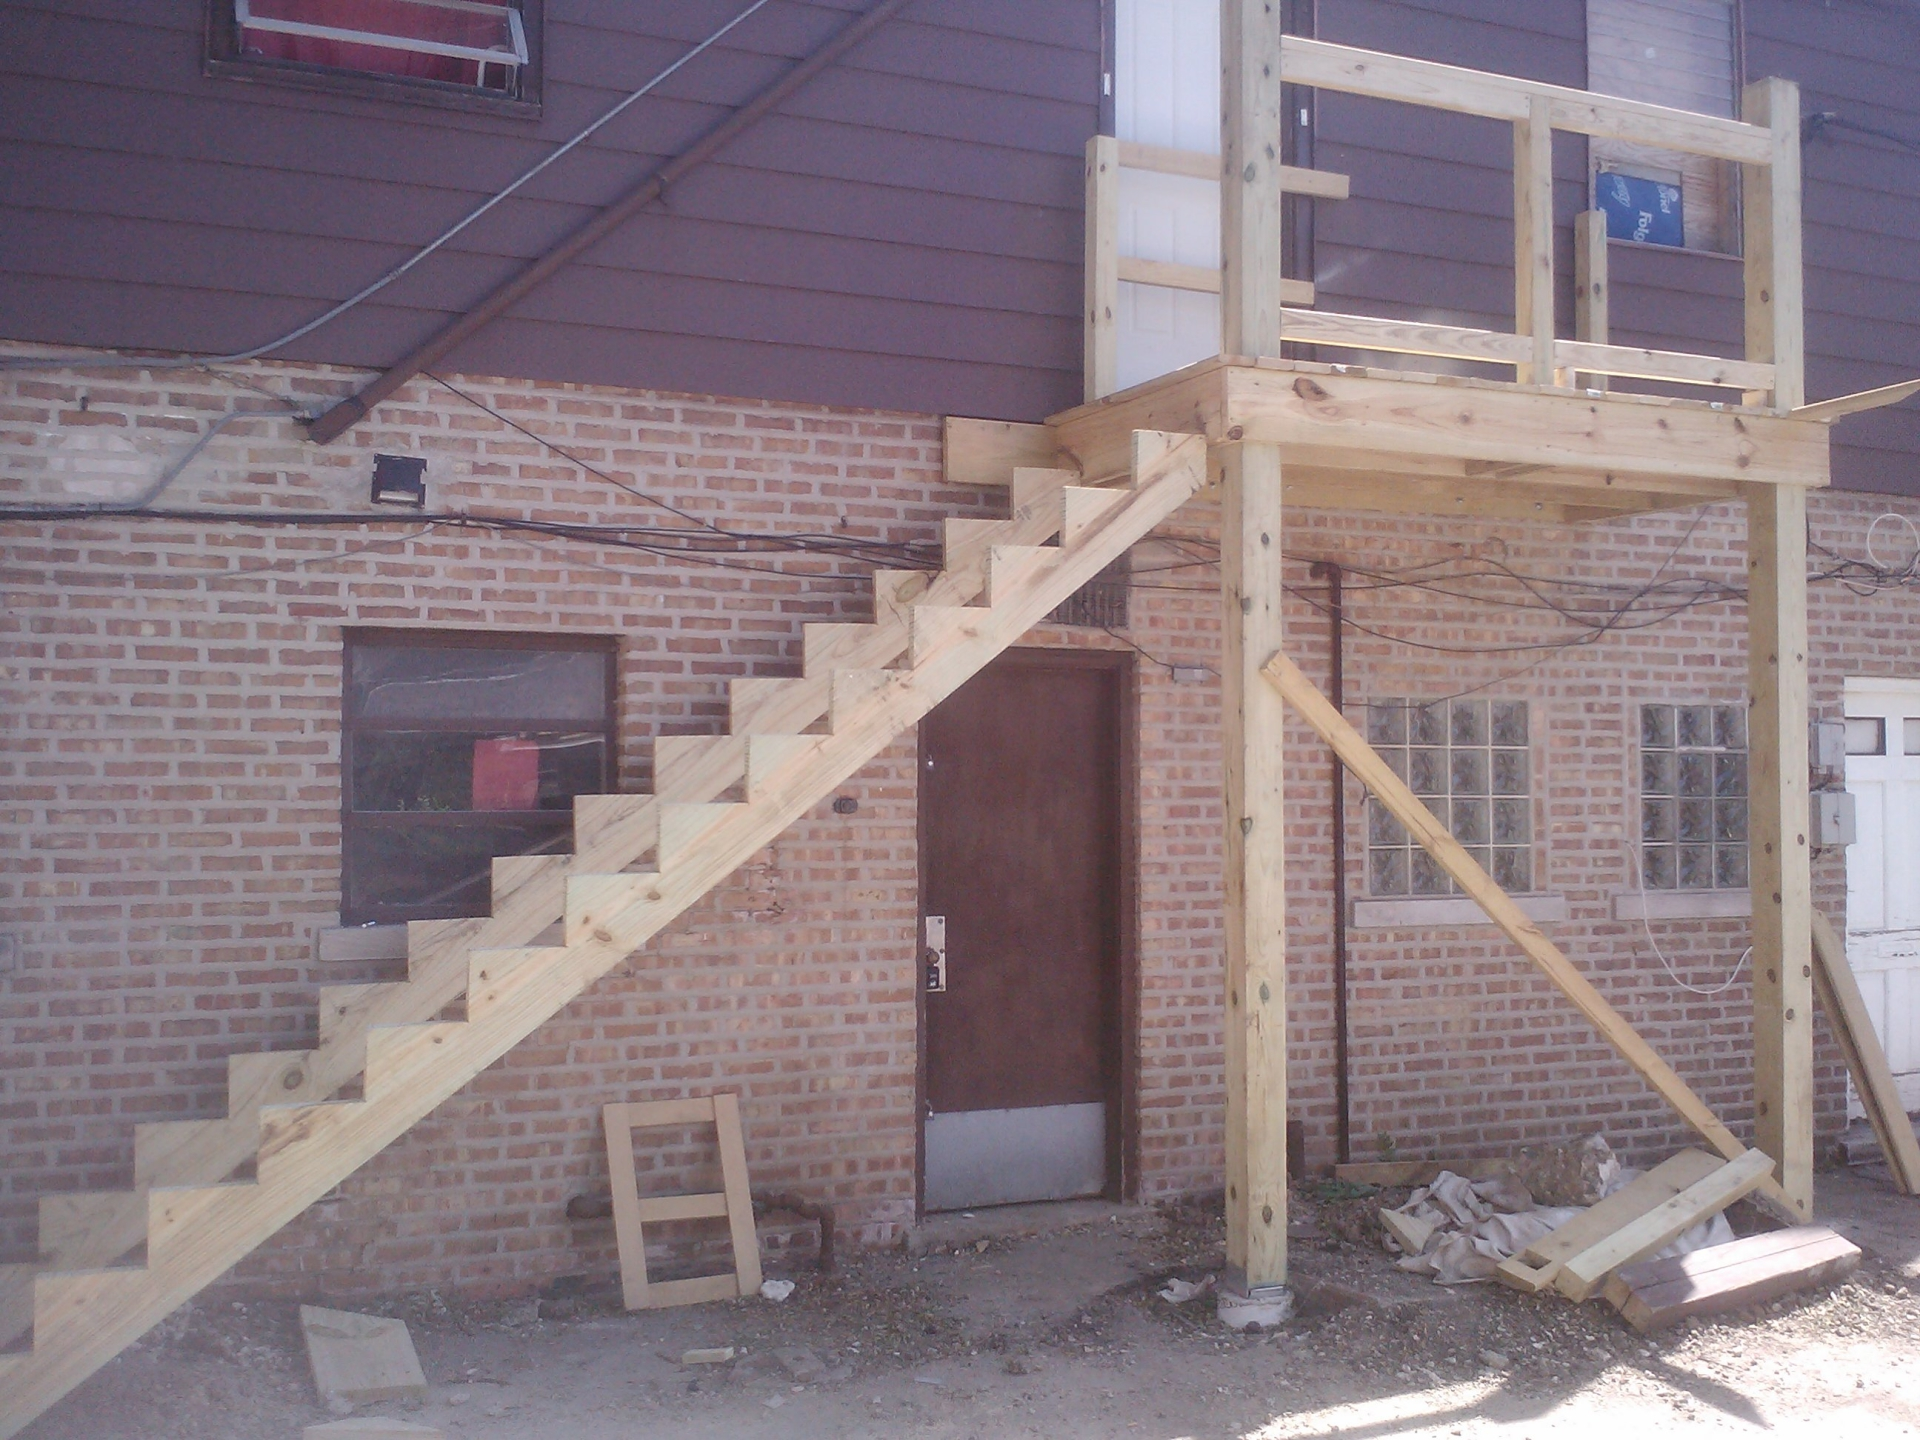 Porch and stairs during